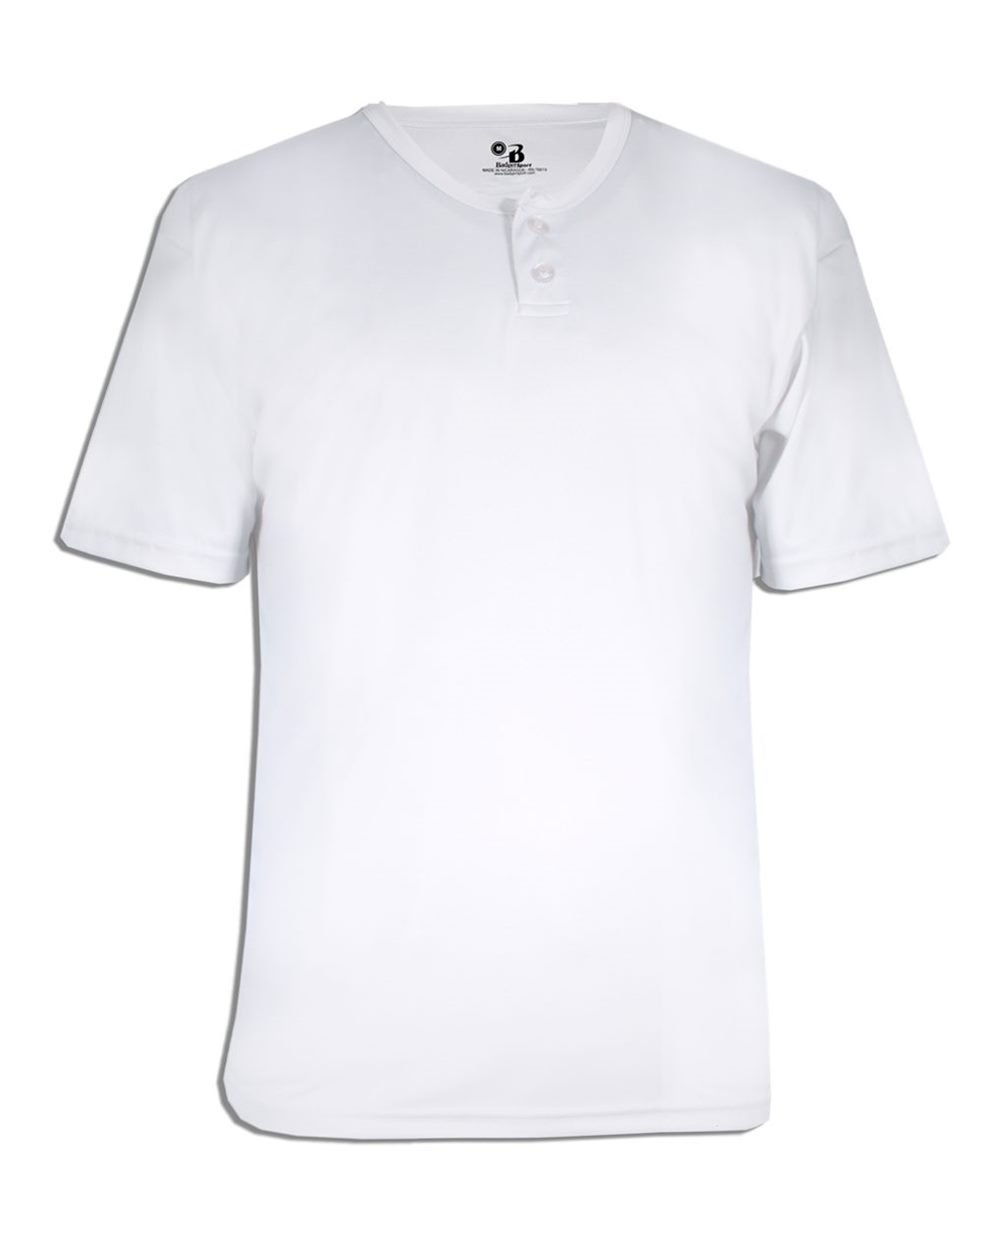 Badger B-Core Adult Placket Jersey, White, Large